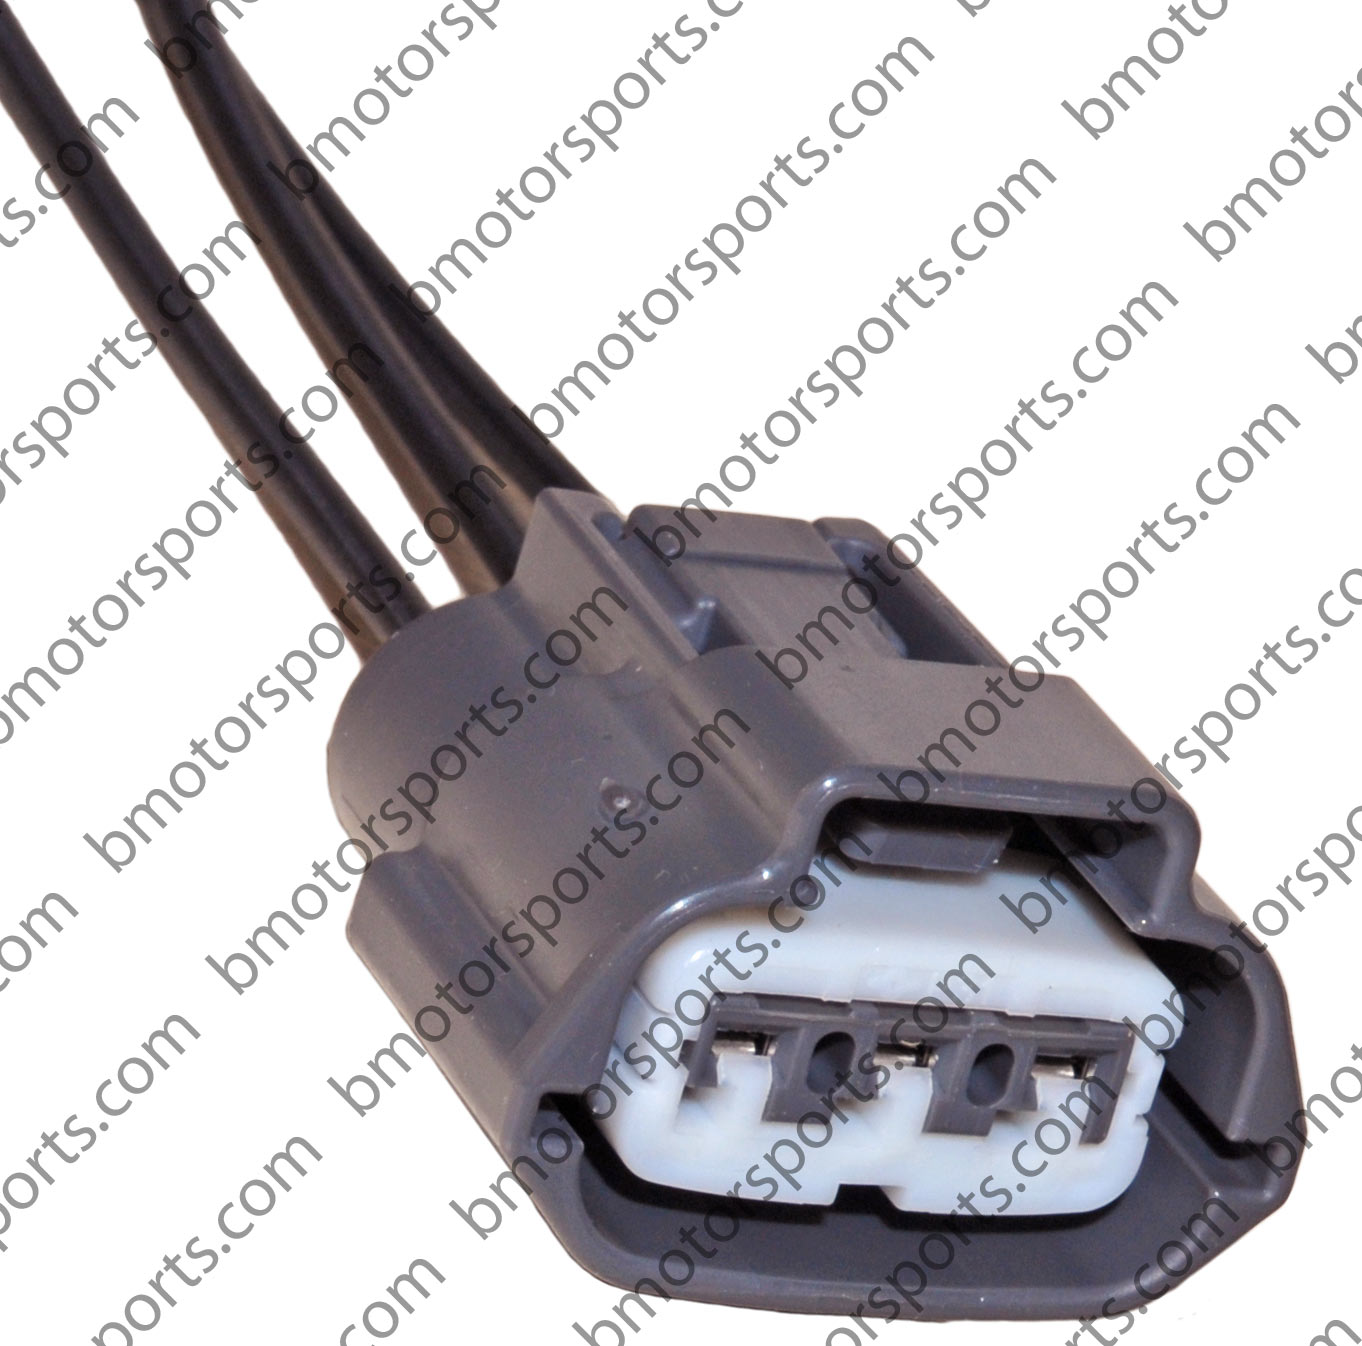 Home Shop New Products 3 Way Plug Connector Pigtail For Nissan Pin Wire Harness And Mazda Coils